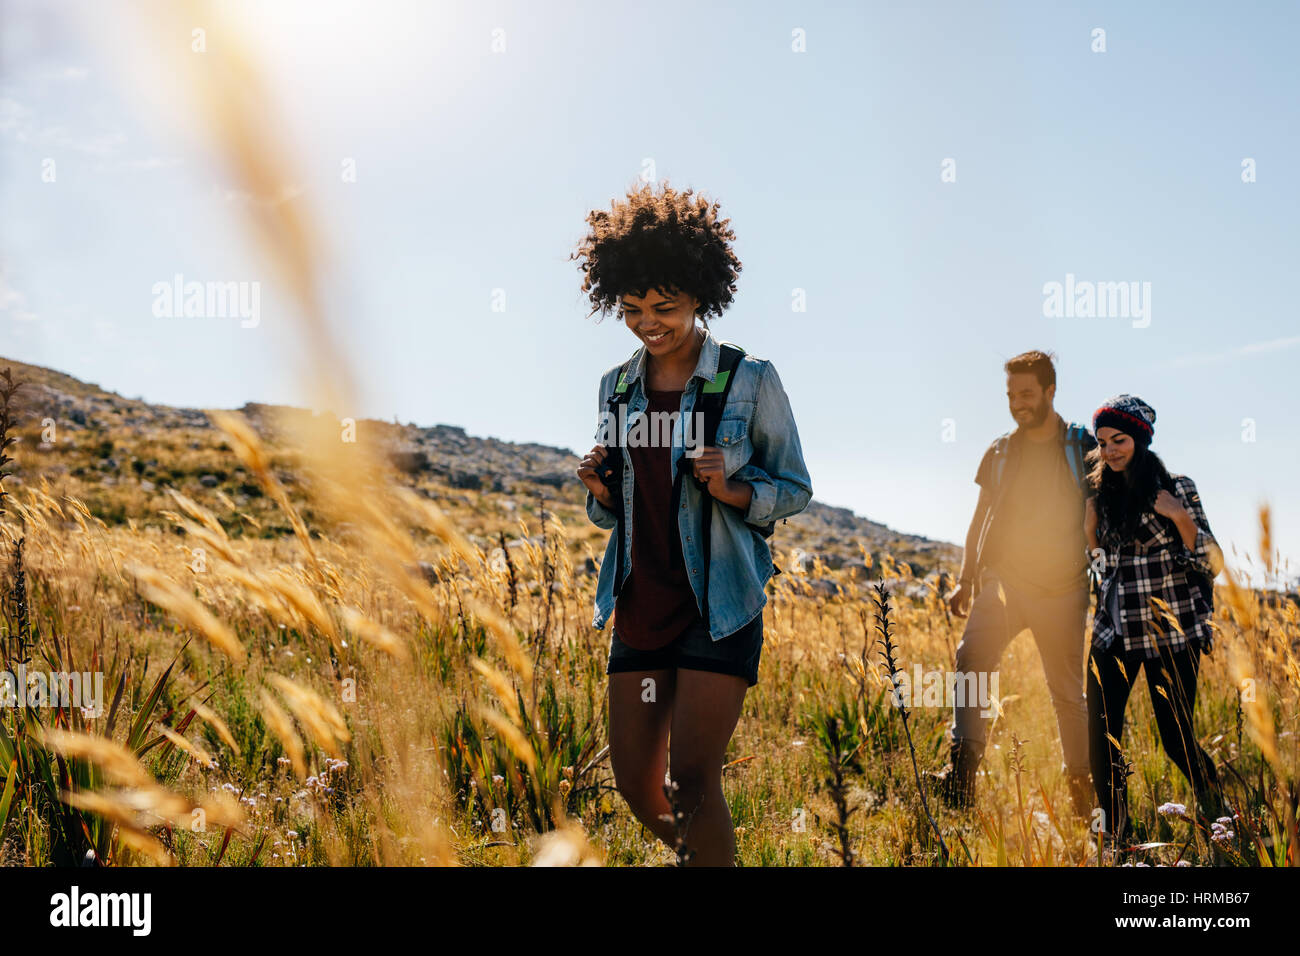 Group of people hiking in countryside. Young women and men on mountain hike. - Stock Image